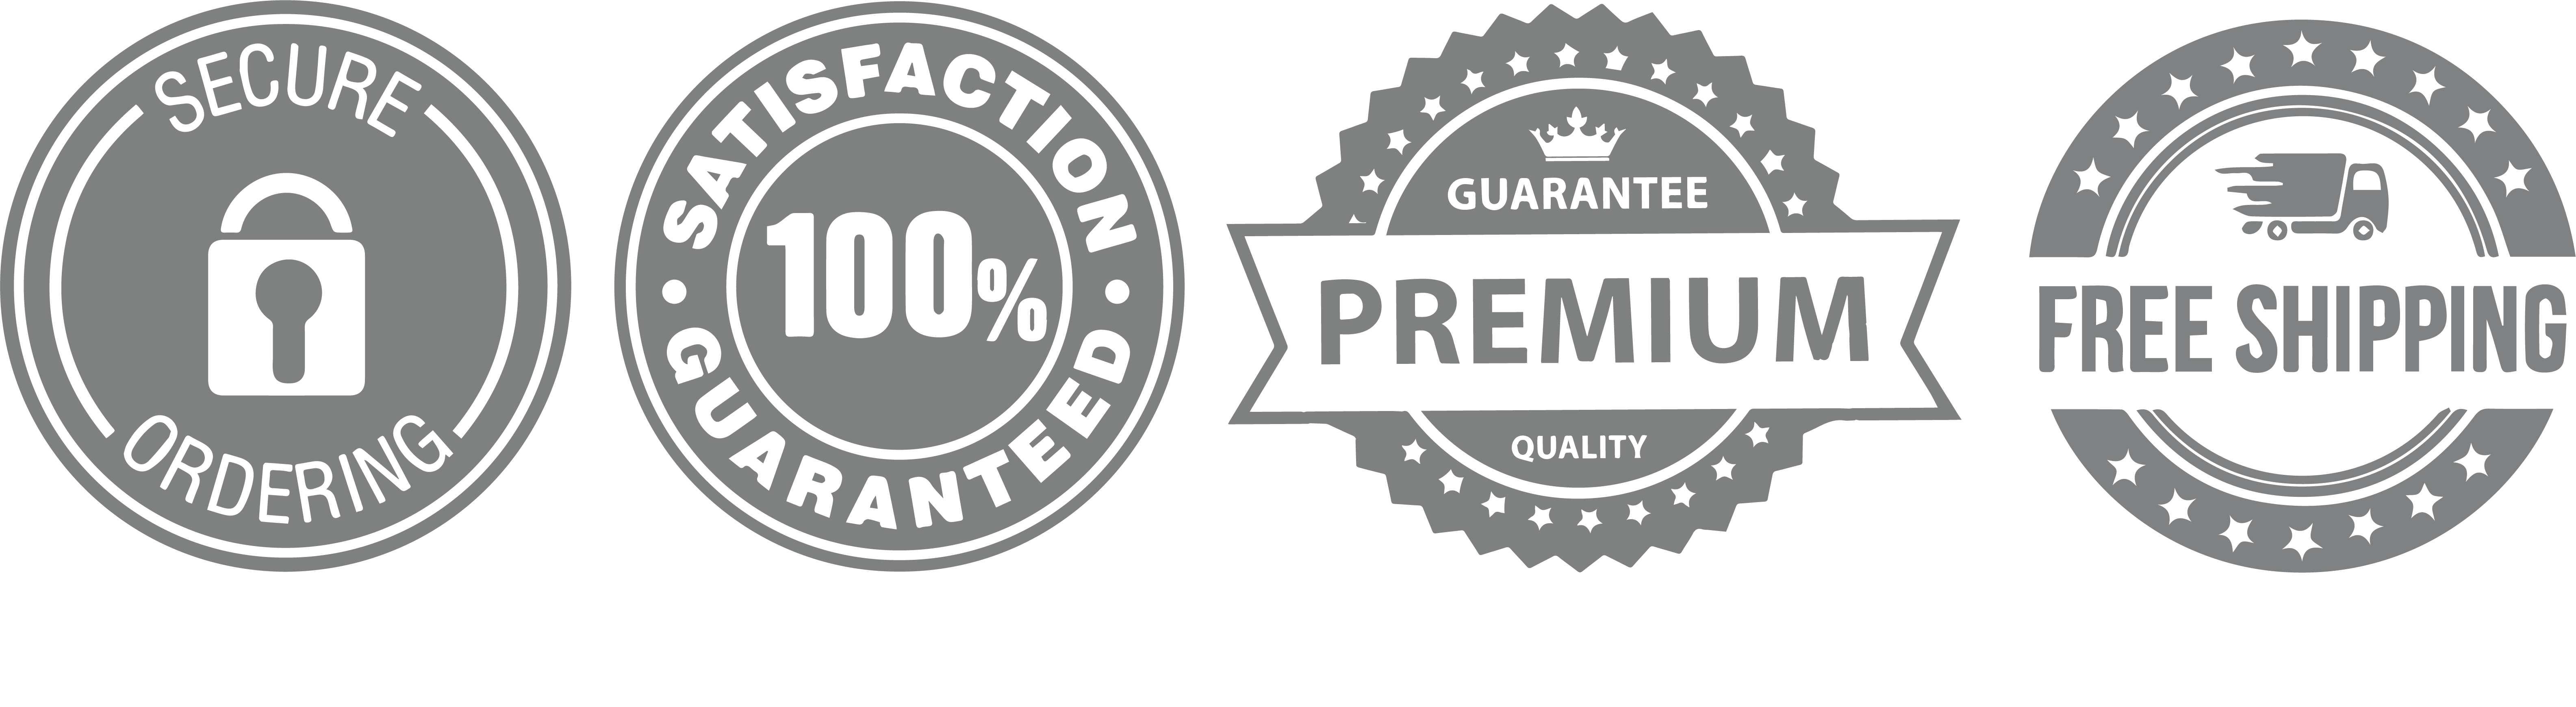 Download Free Shipping Trust Badges - Full Size PNG Image - PNGkit